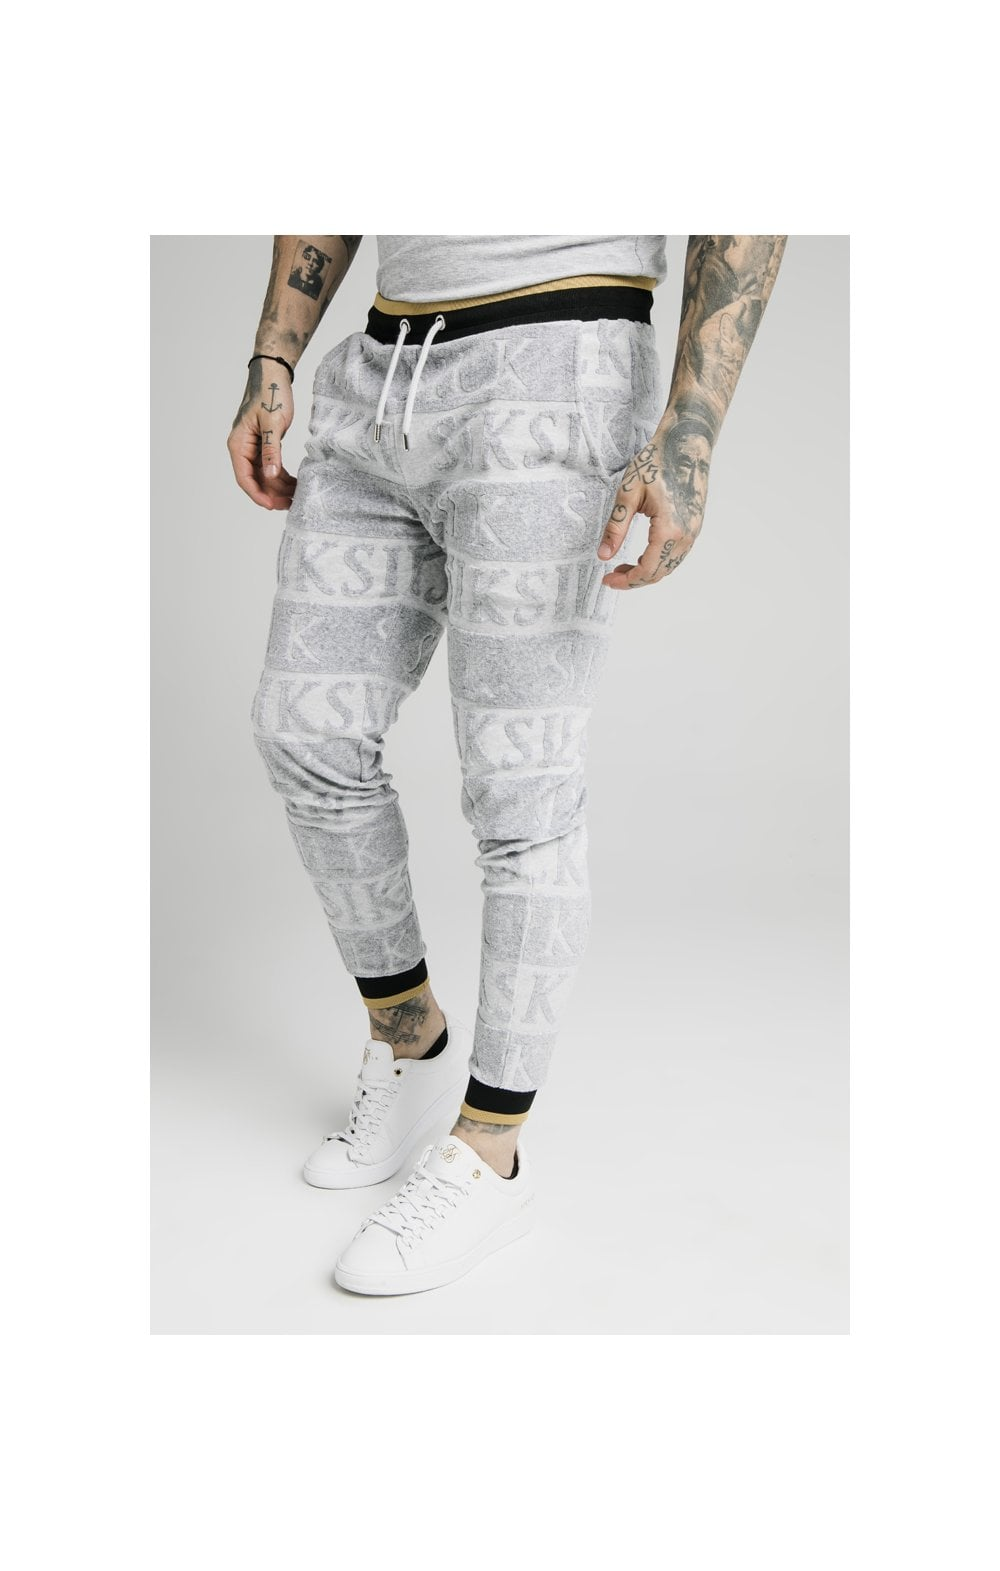 SikSilk Inverse Fitted Joggers - Grey, Black & Gold